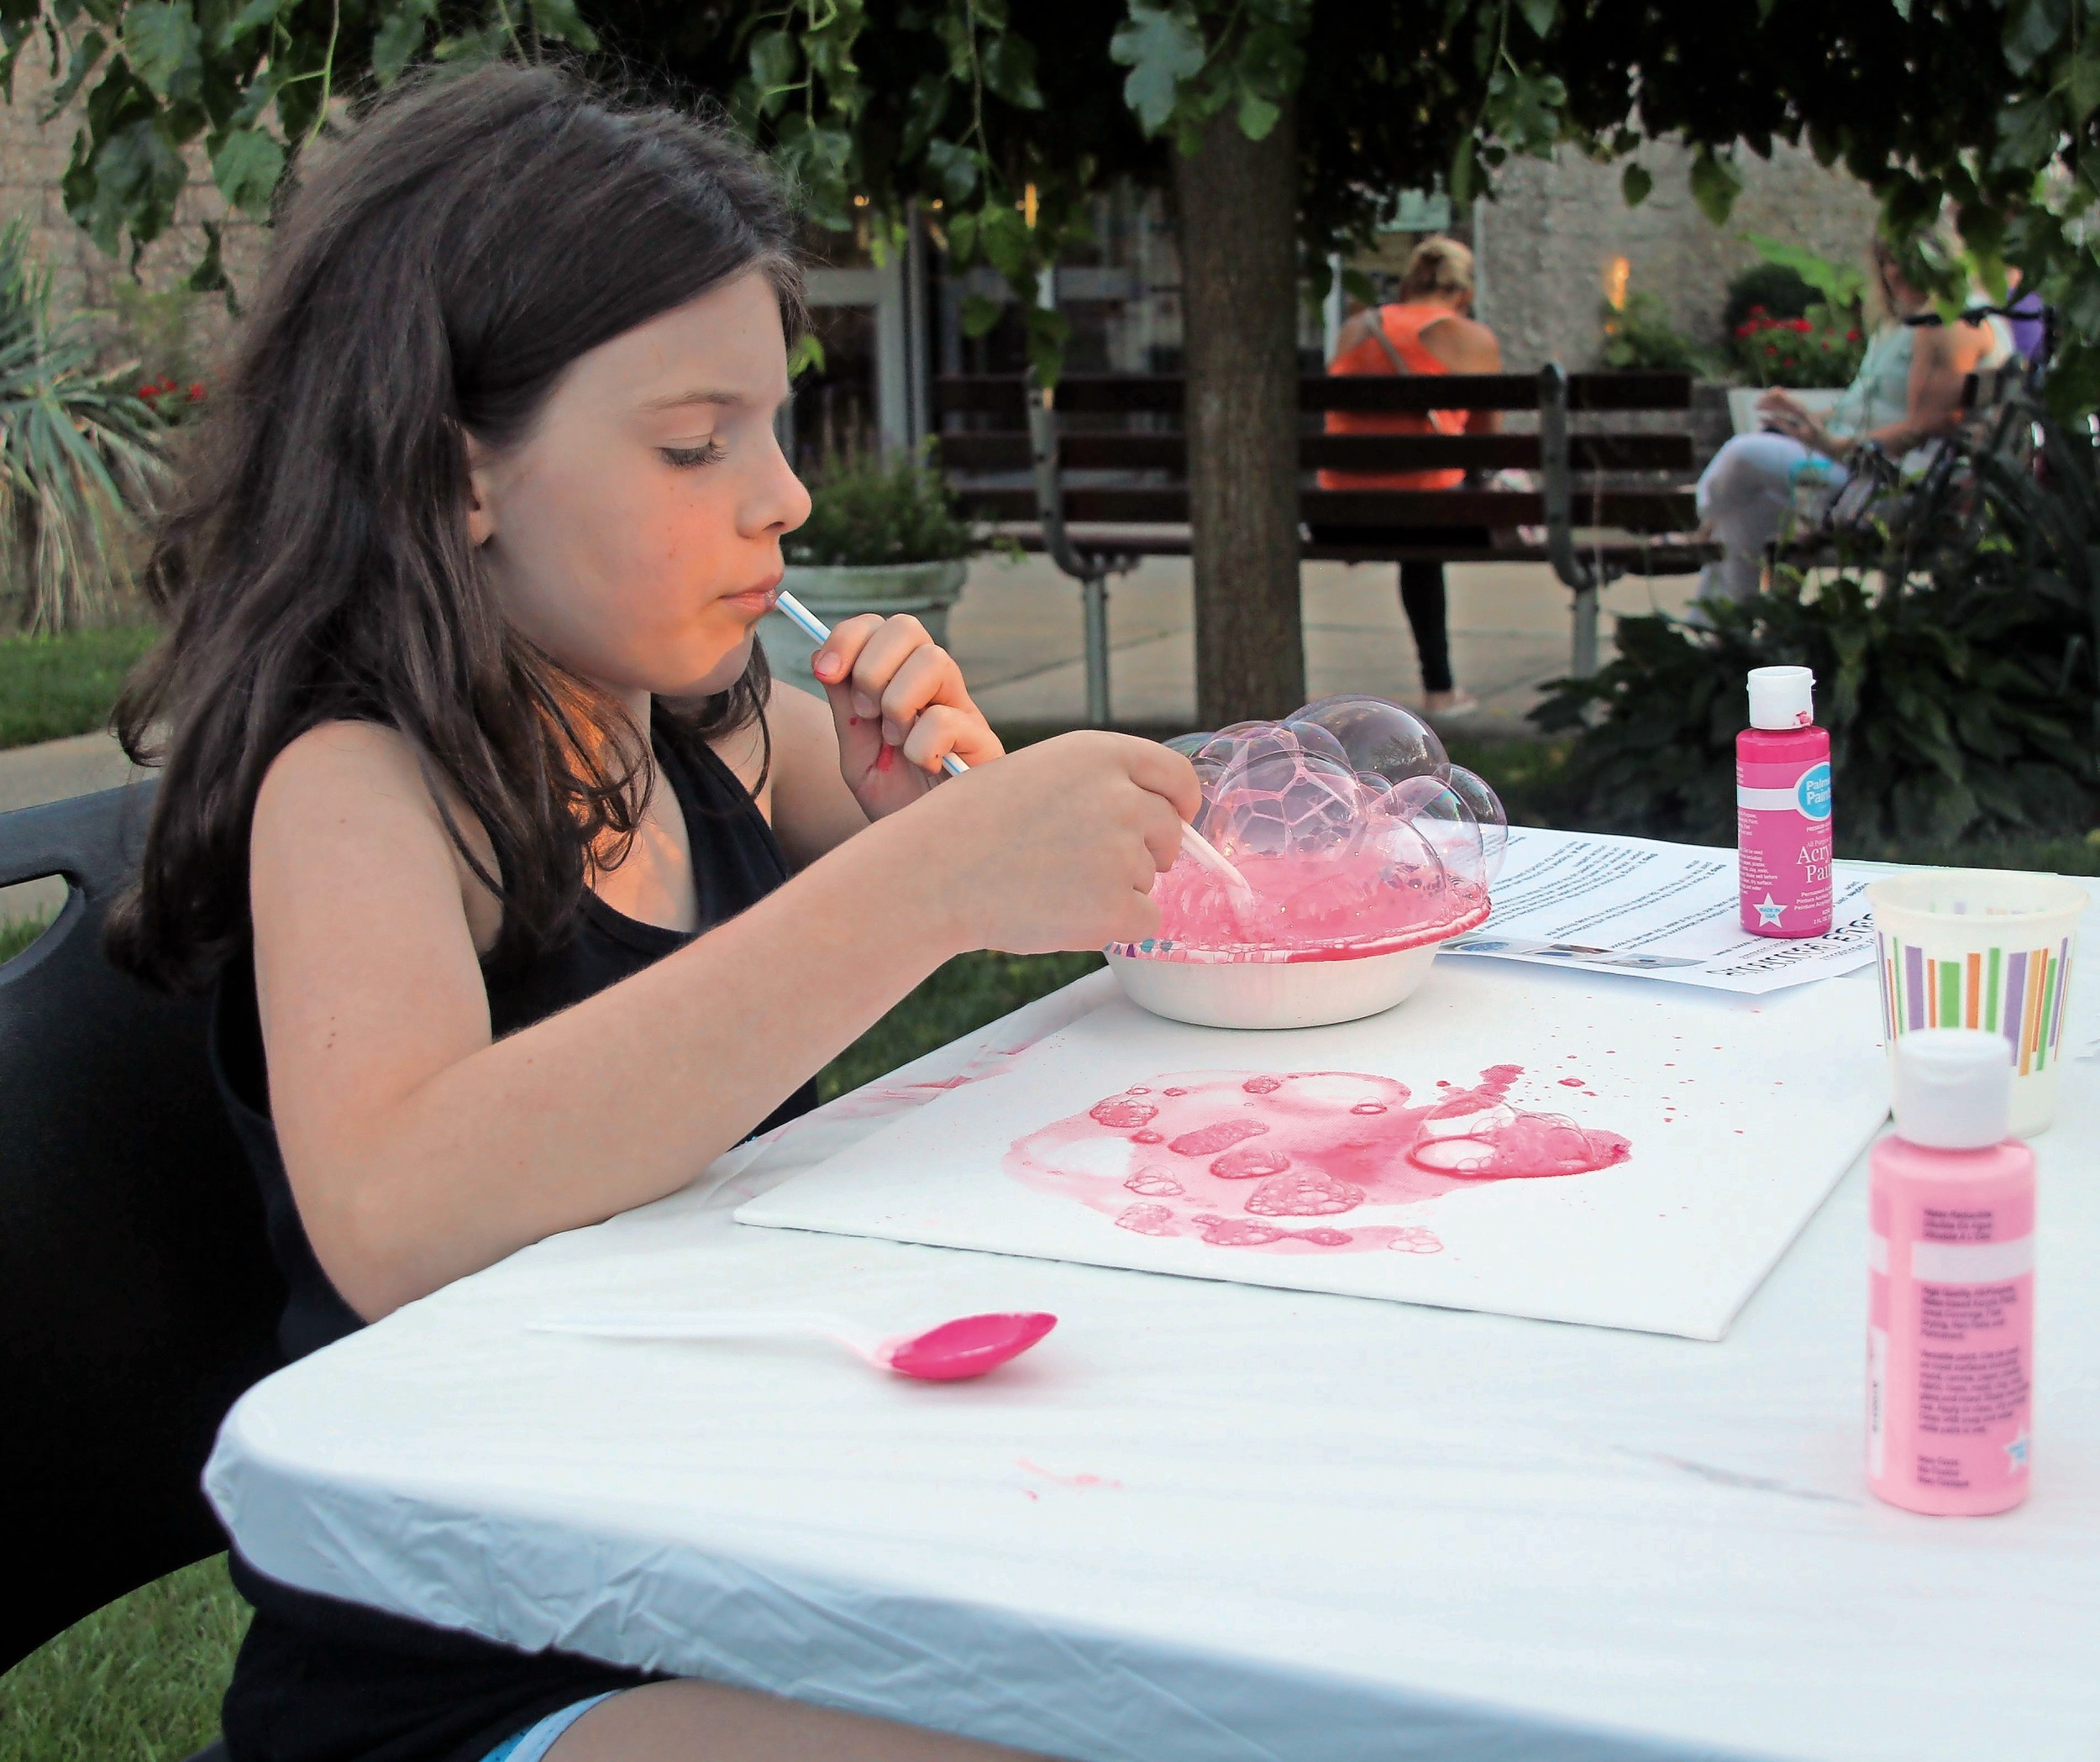 Sophia Zanelotti, 9, blew pink bubbles using soap and paint.